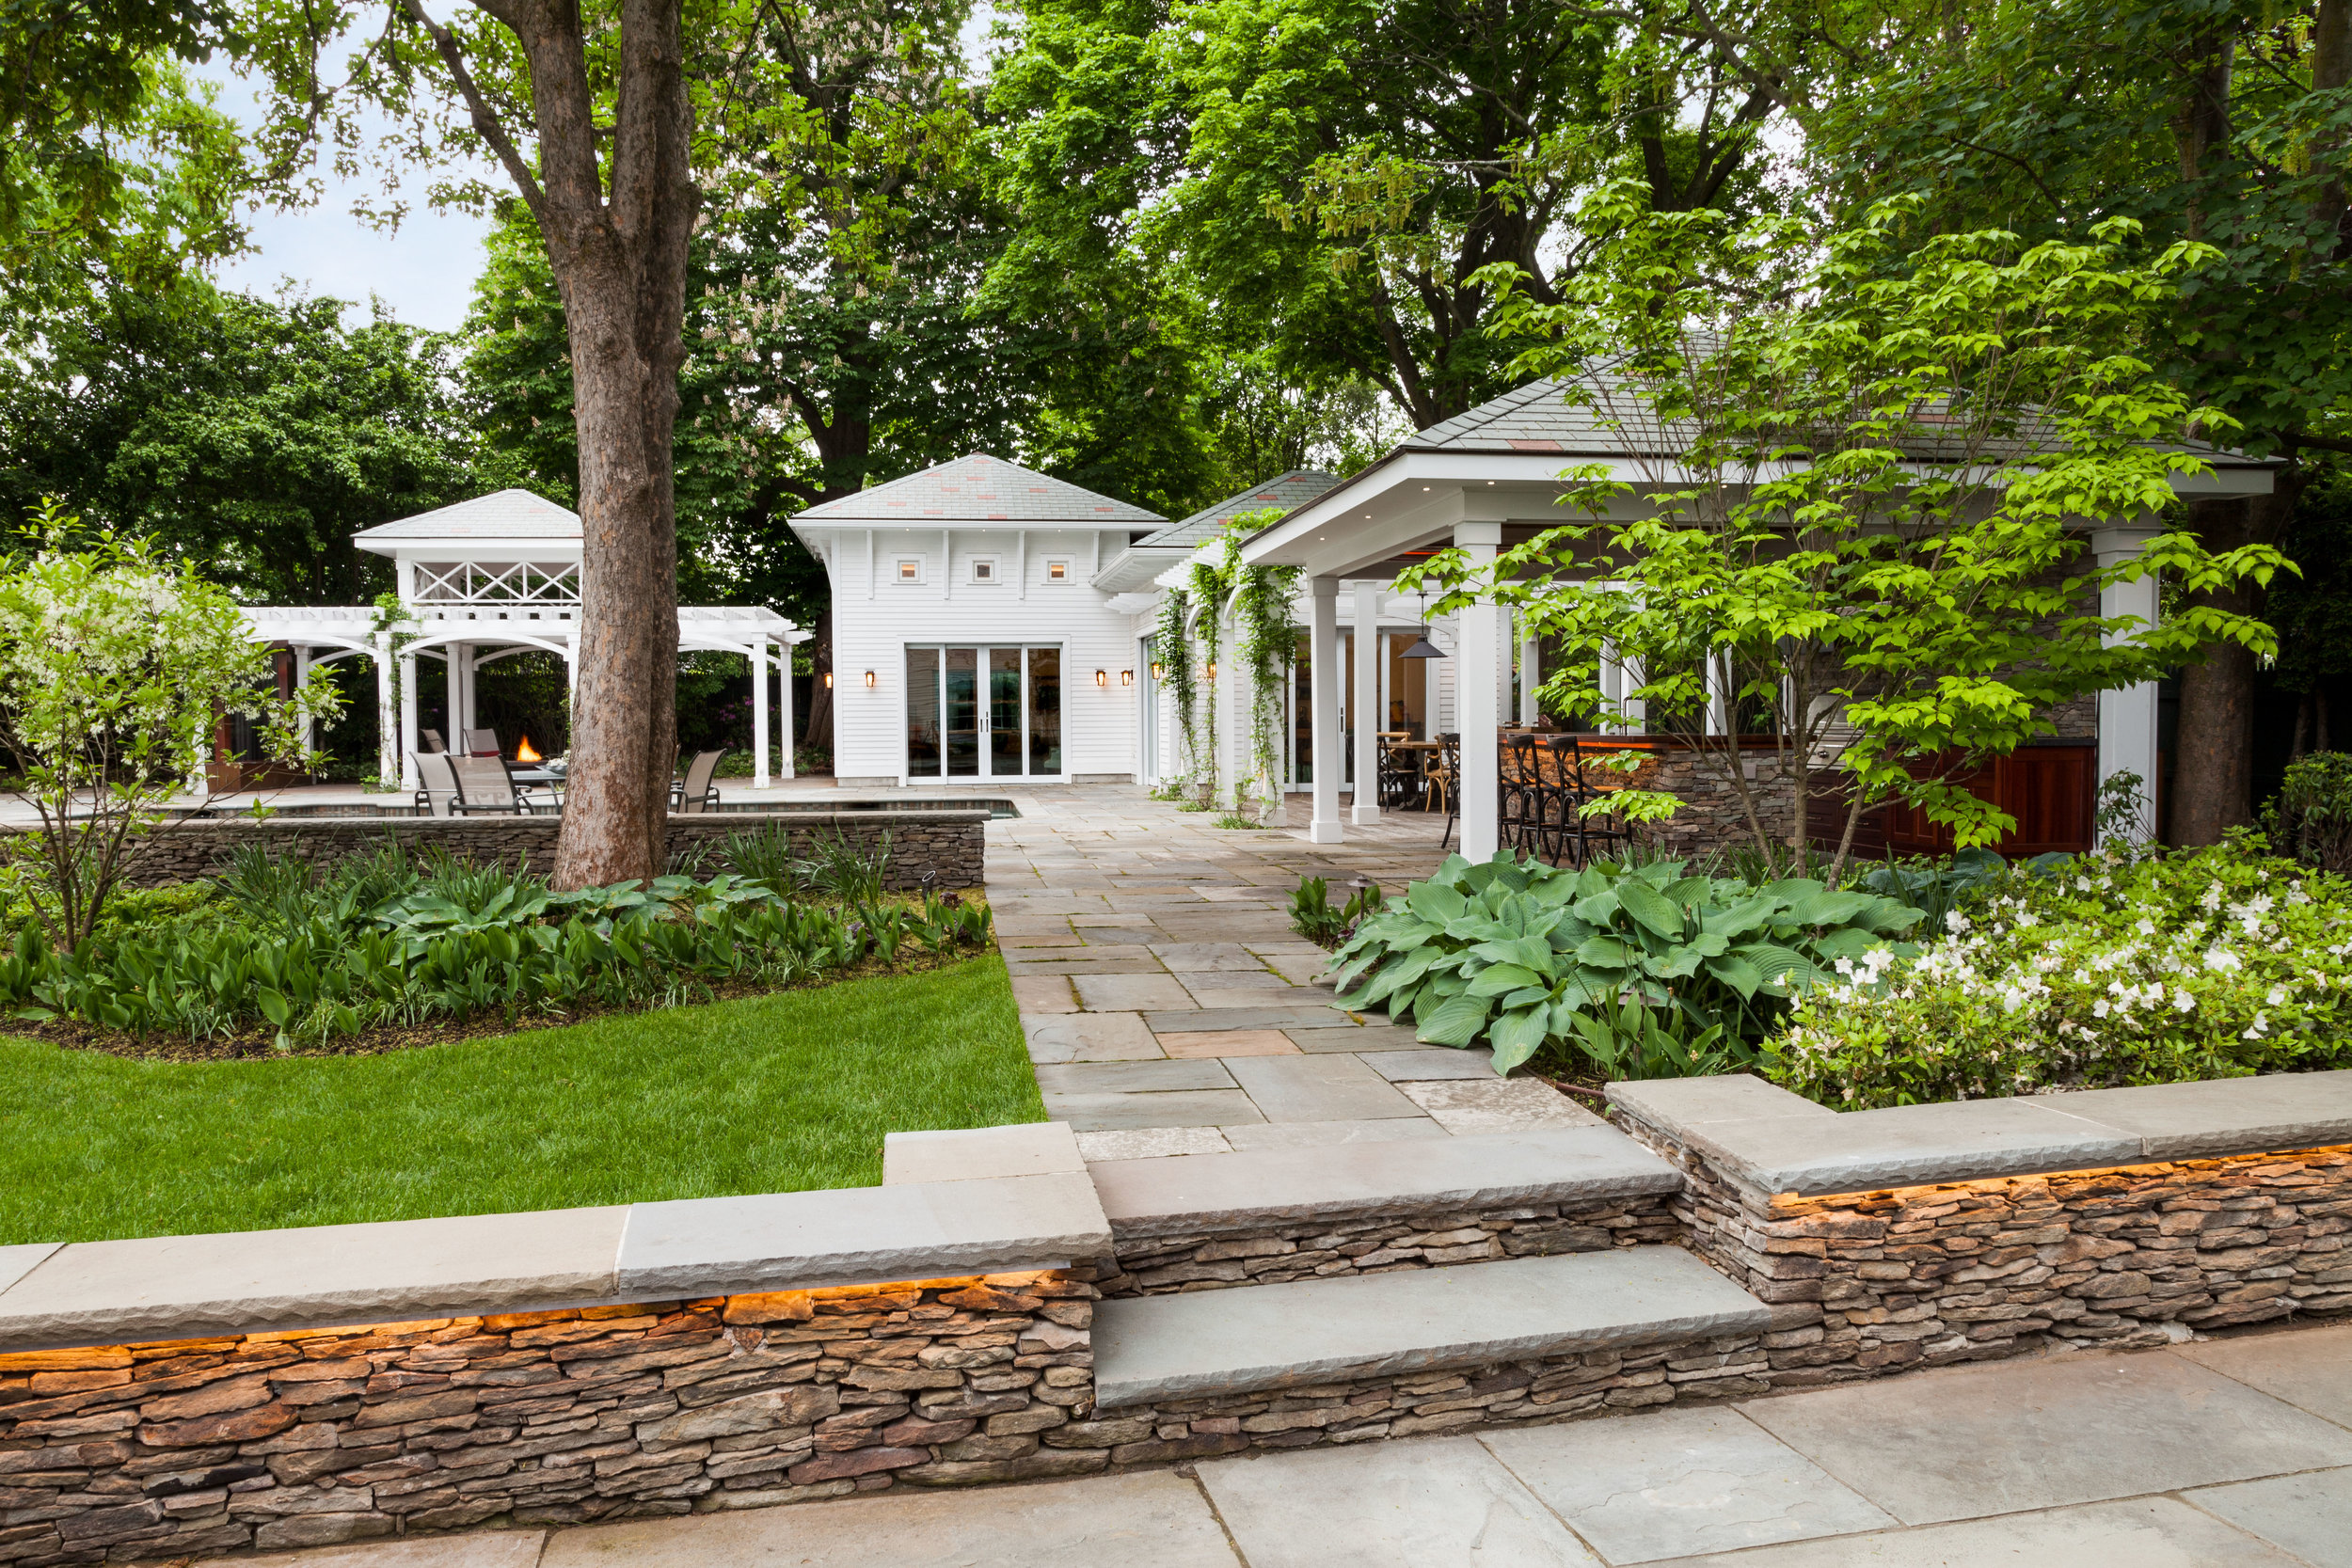 How to Find the Best Landscapers Near Me in Cambridge, MA